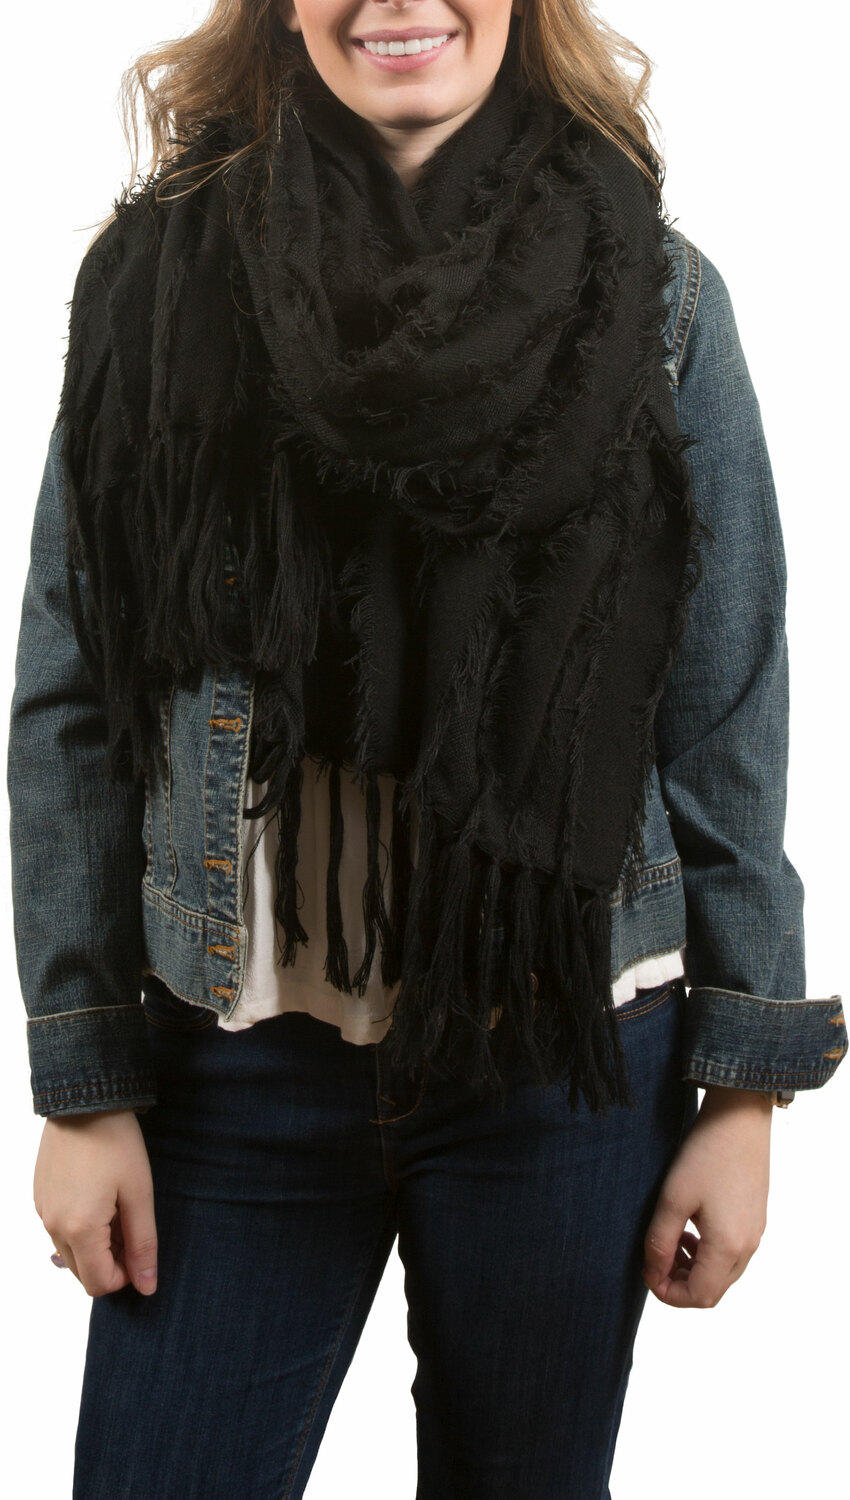 Black by H2Z Scarves - Black - Oversized Frayed Scarf